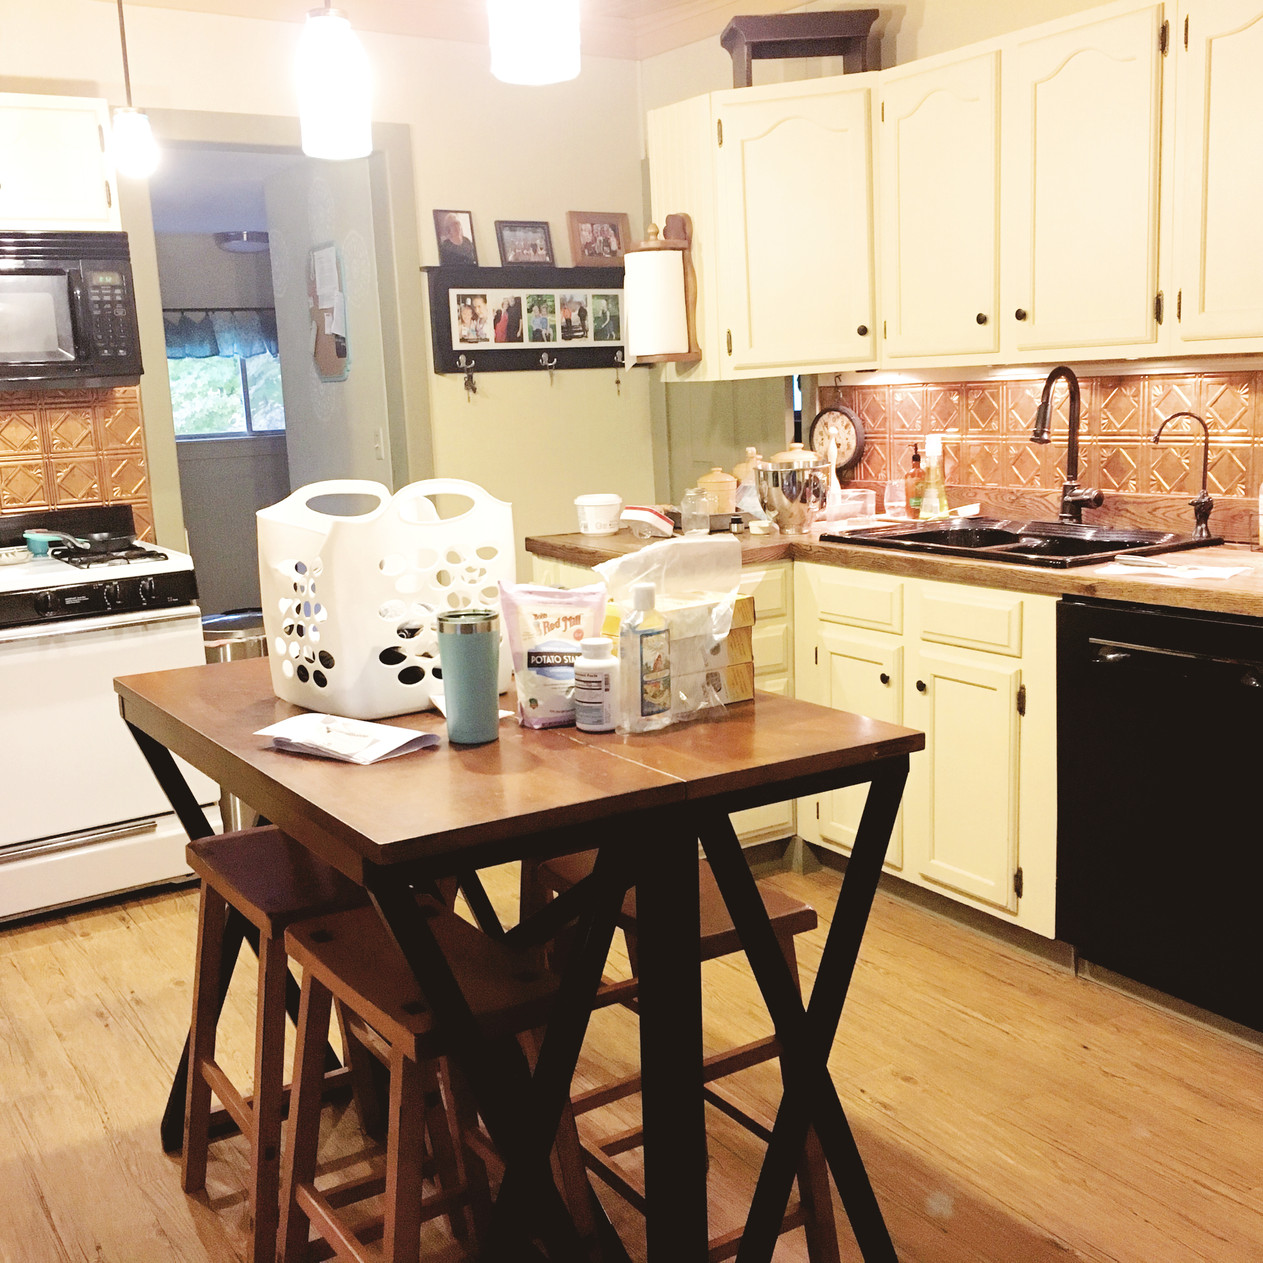 kitchen before decluttering: ready for Christmas